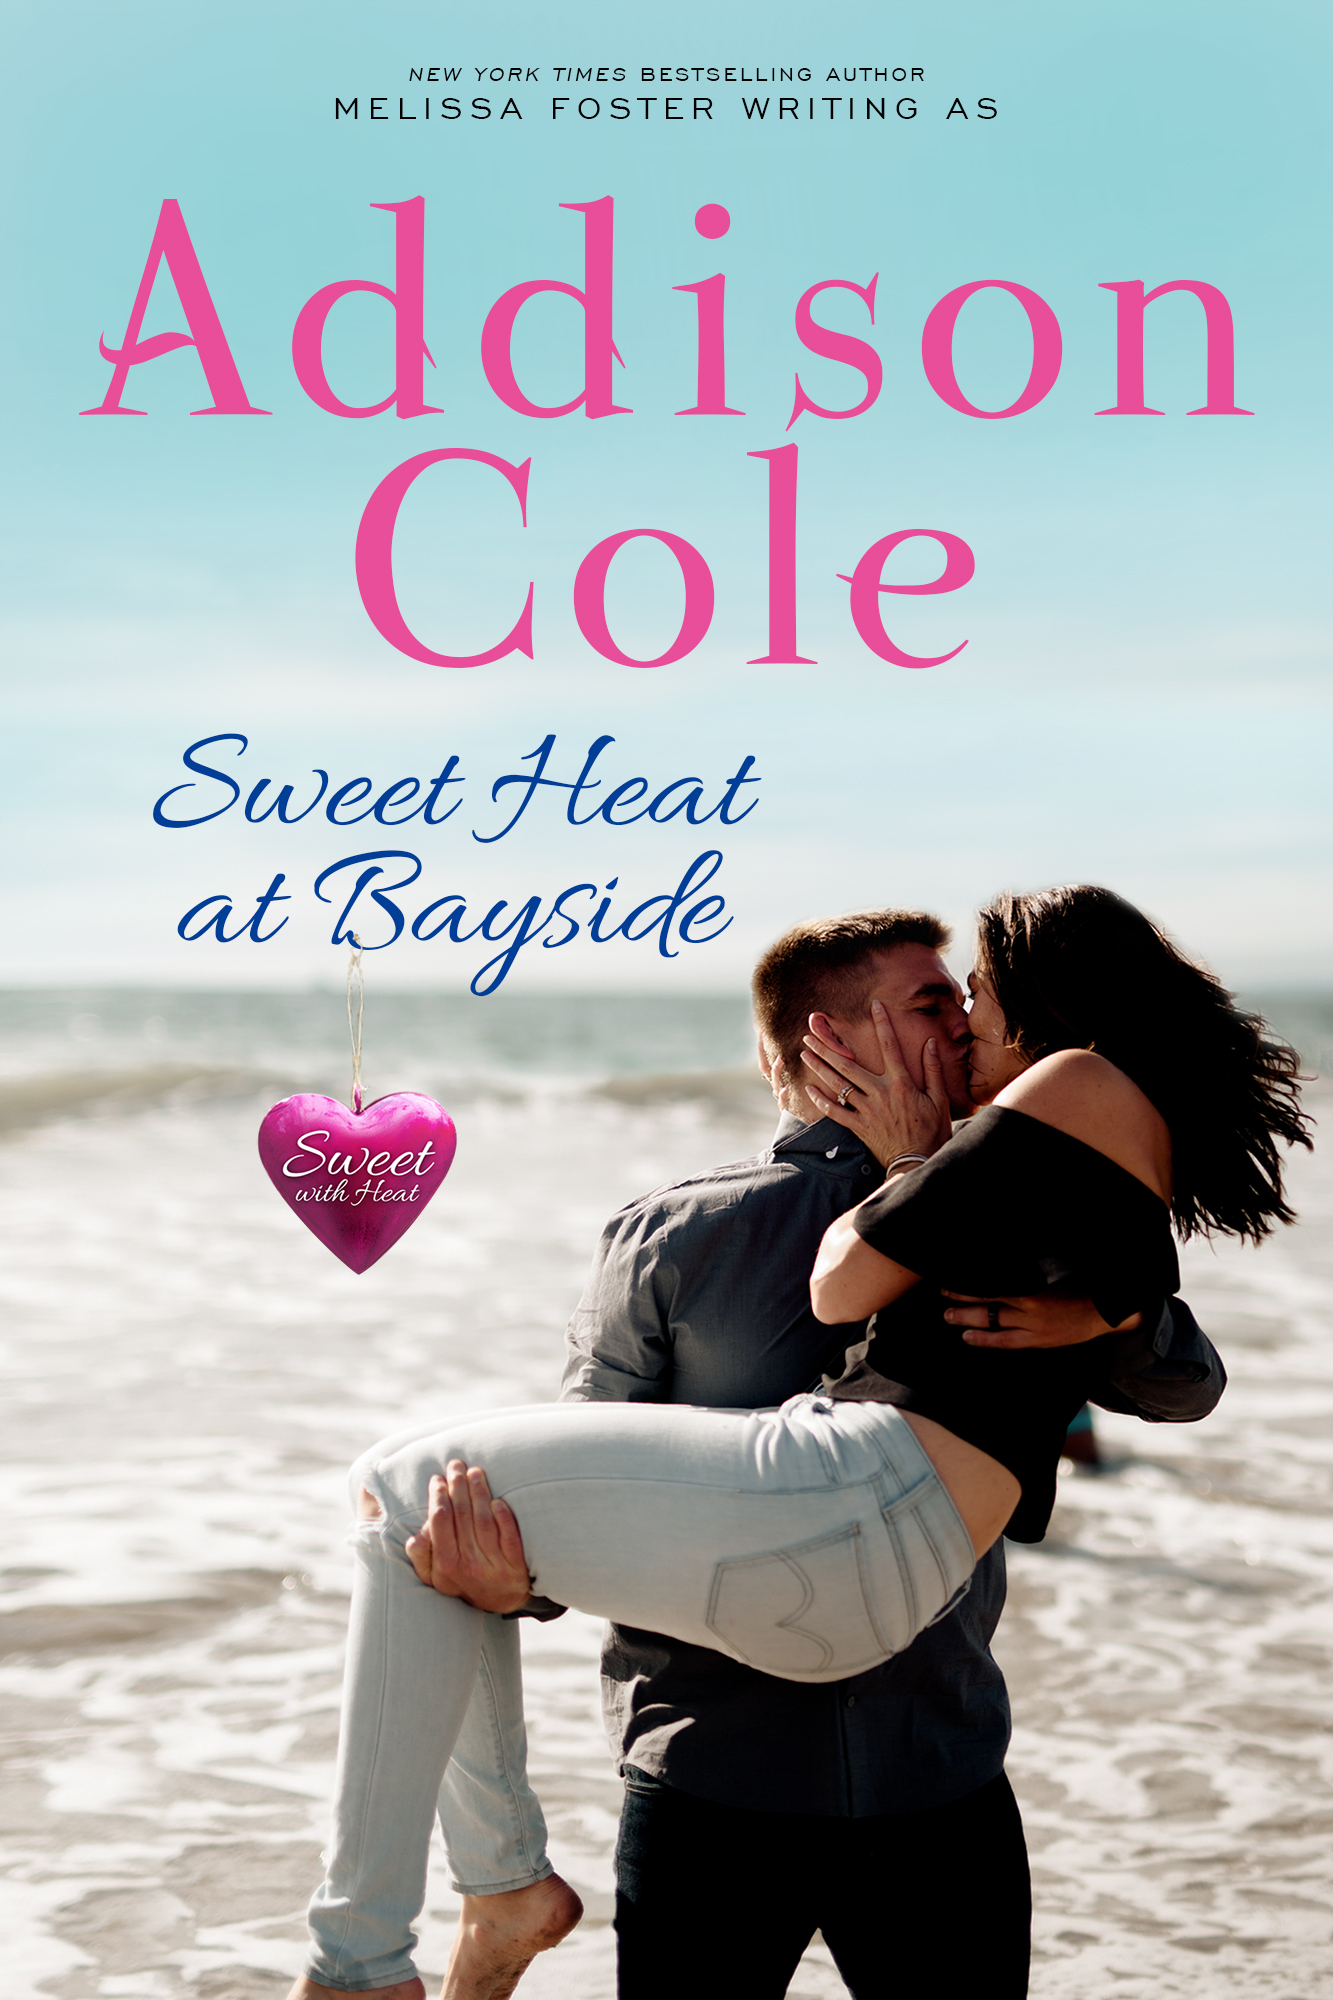 Blog Tour & Review: Sweet Heat at Bayside by Addison Cole